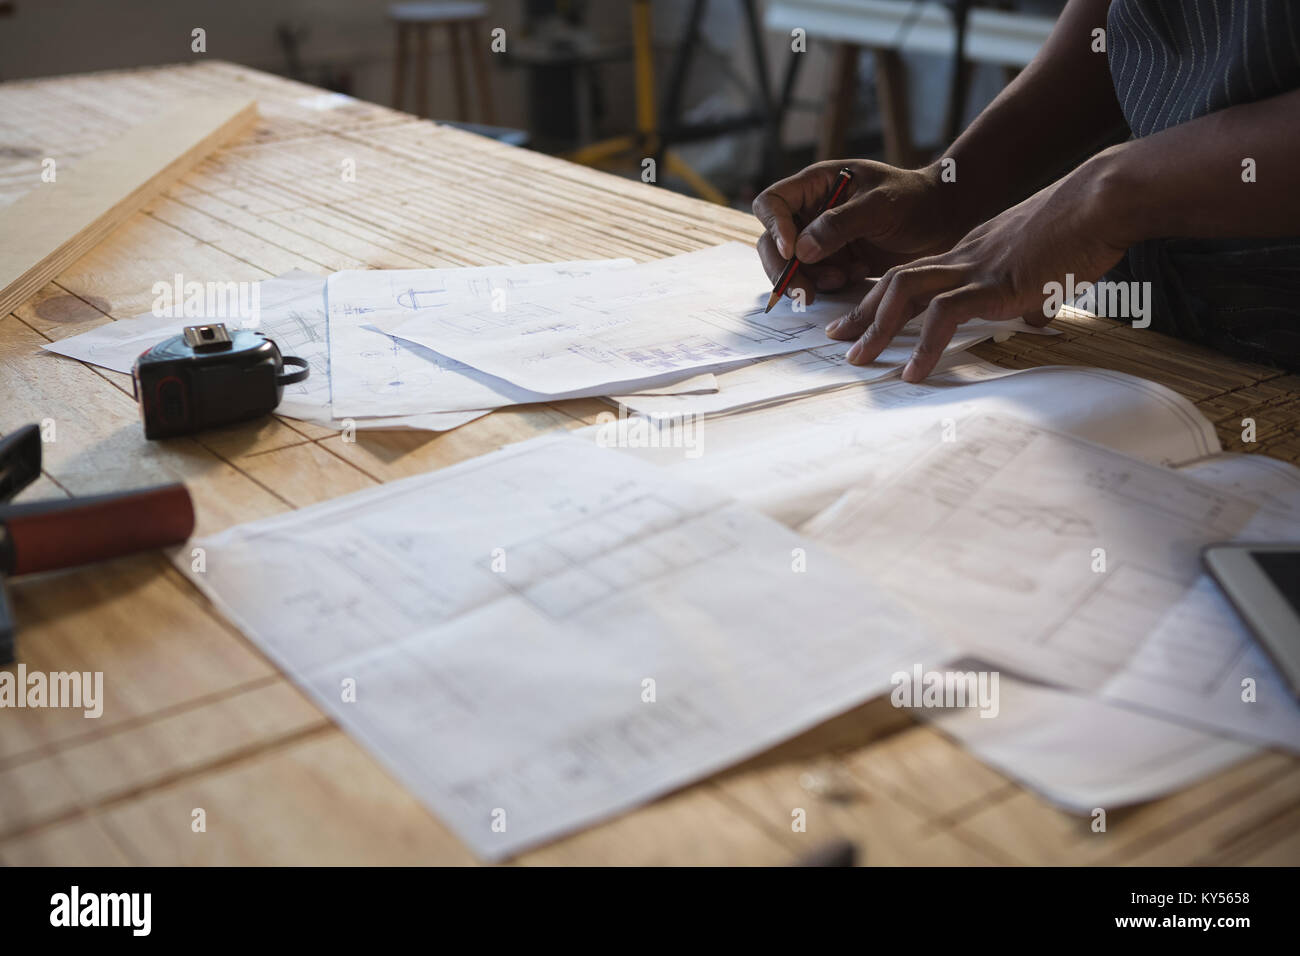 Mid section of carpenter working at table - Stock Image